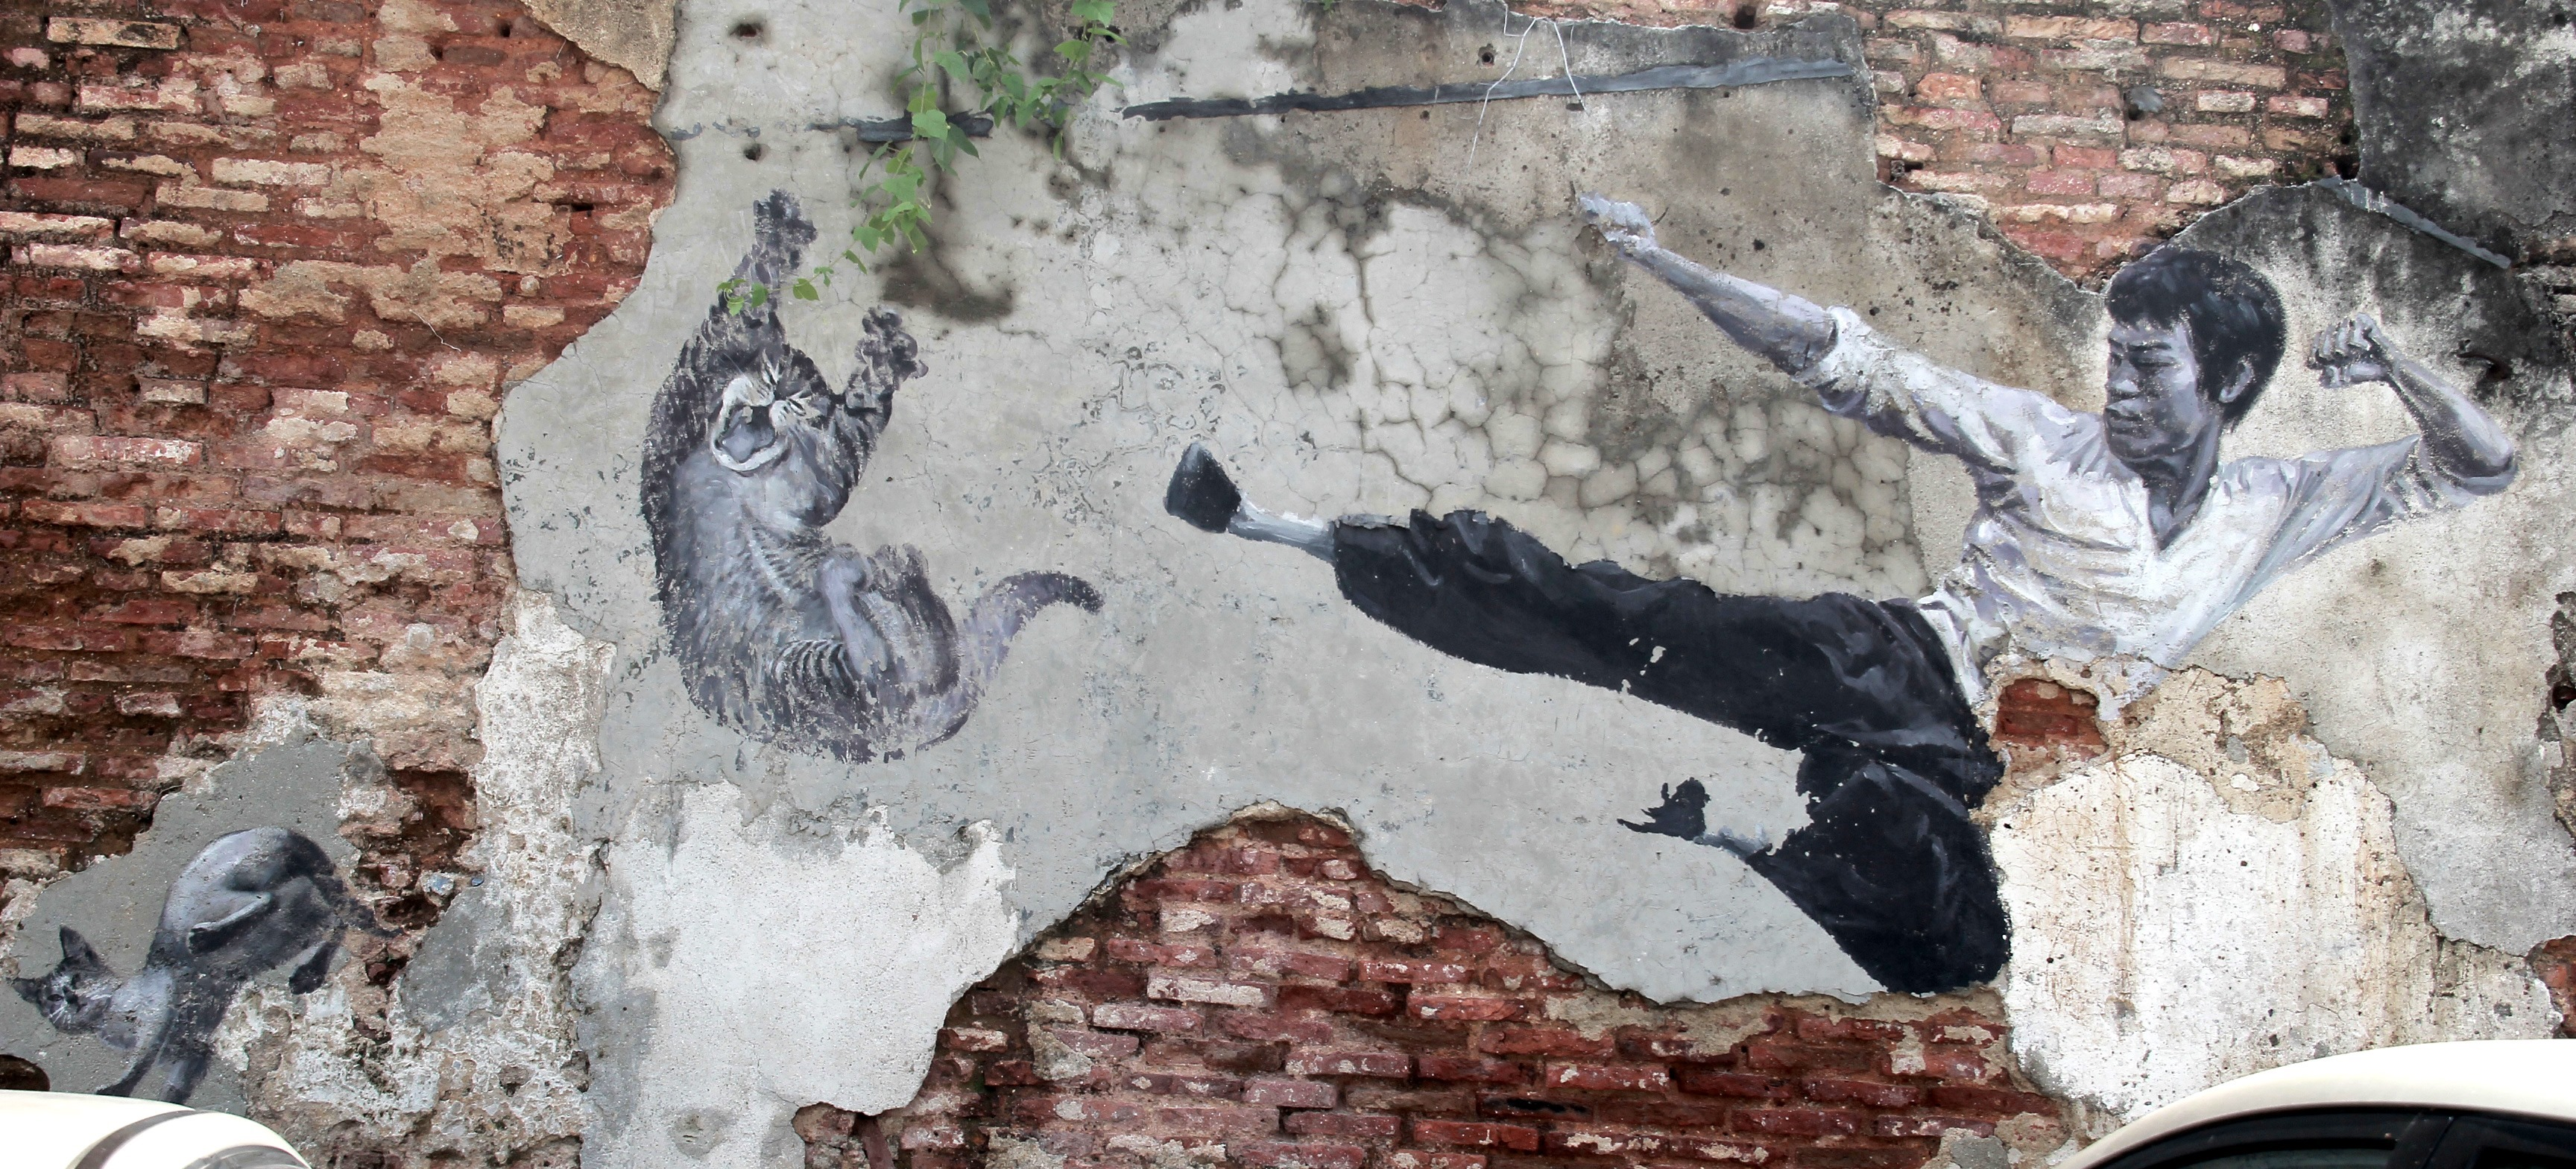 penang-malaysia-brucelee-cat-kicking-theDesignSketchbook